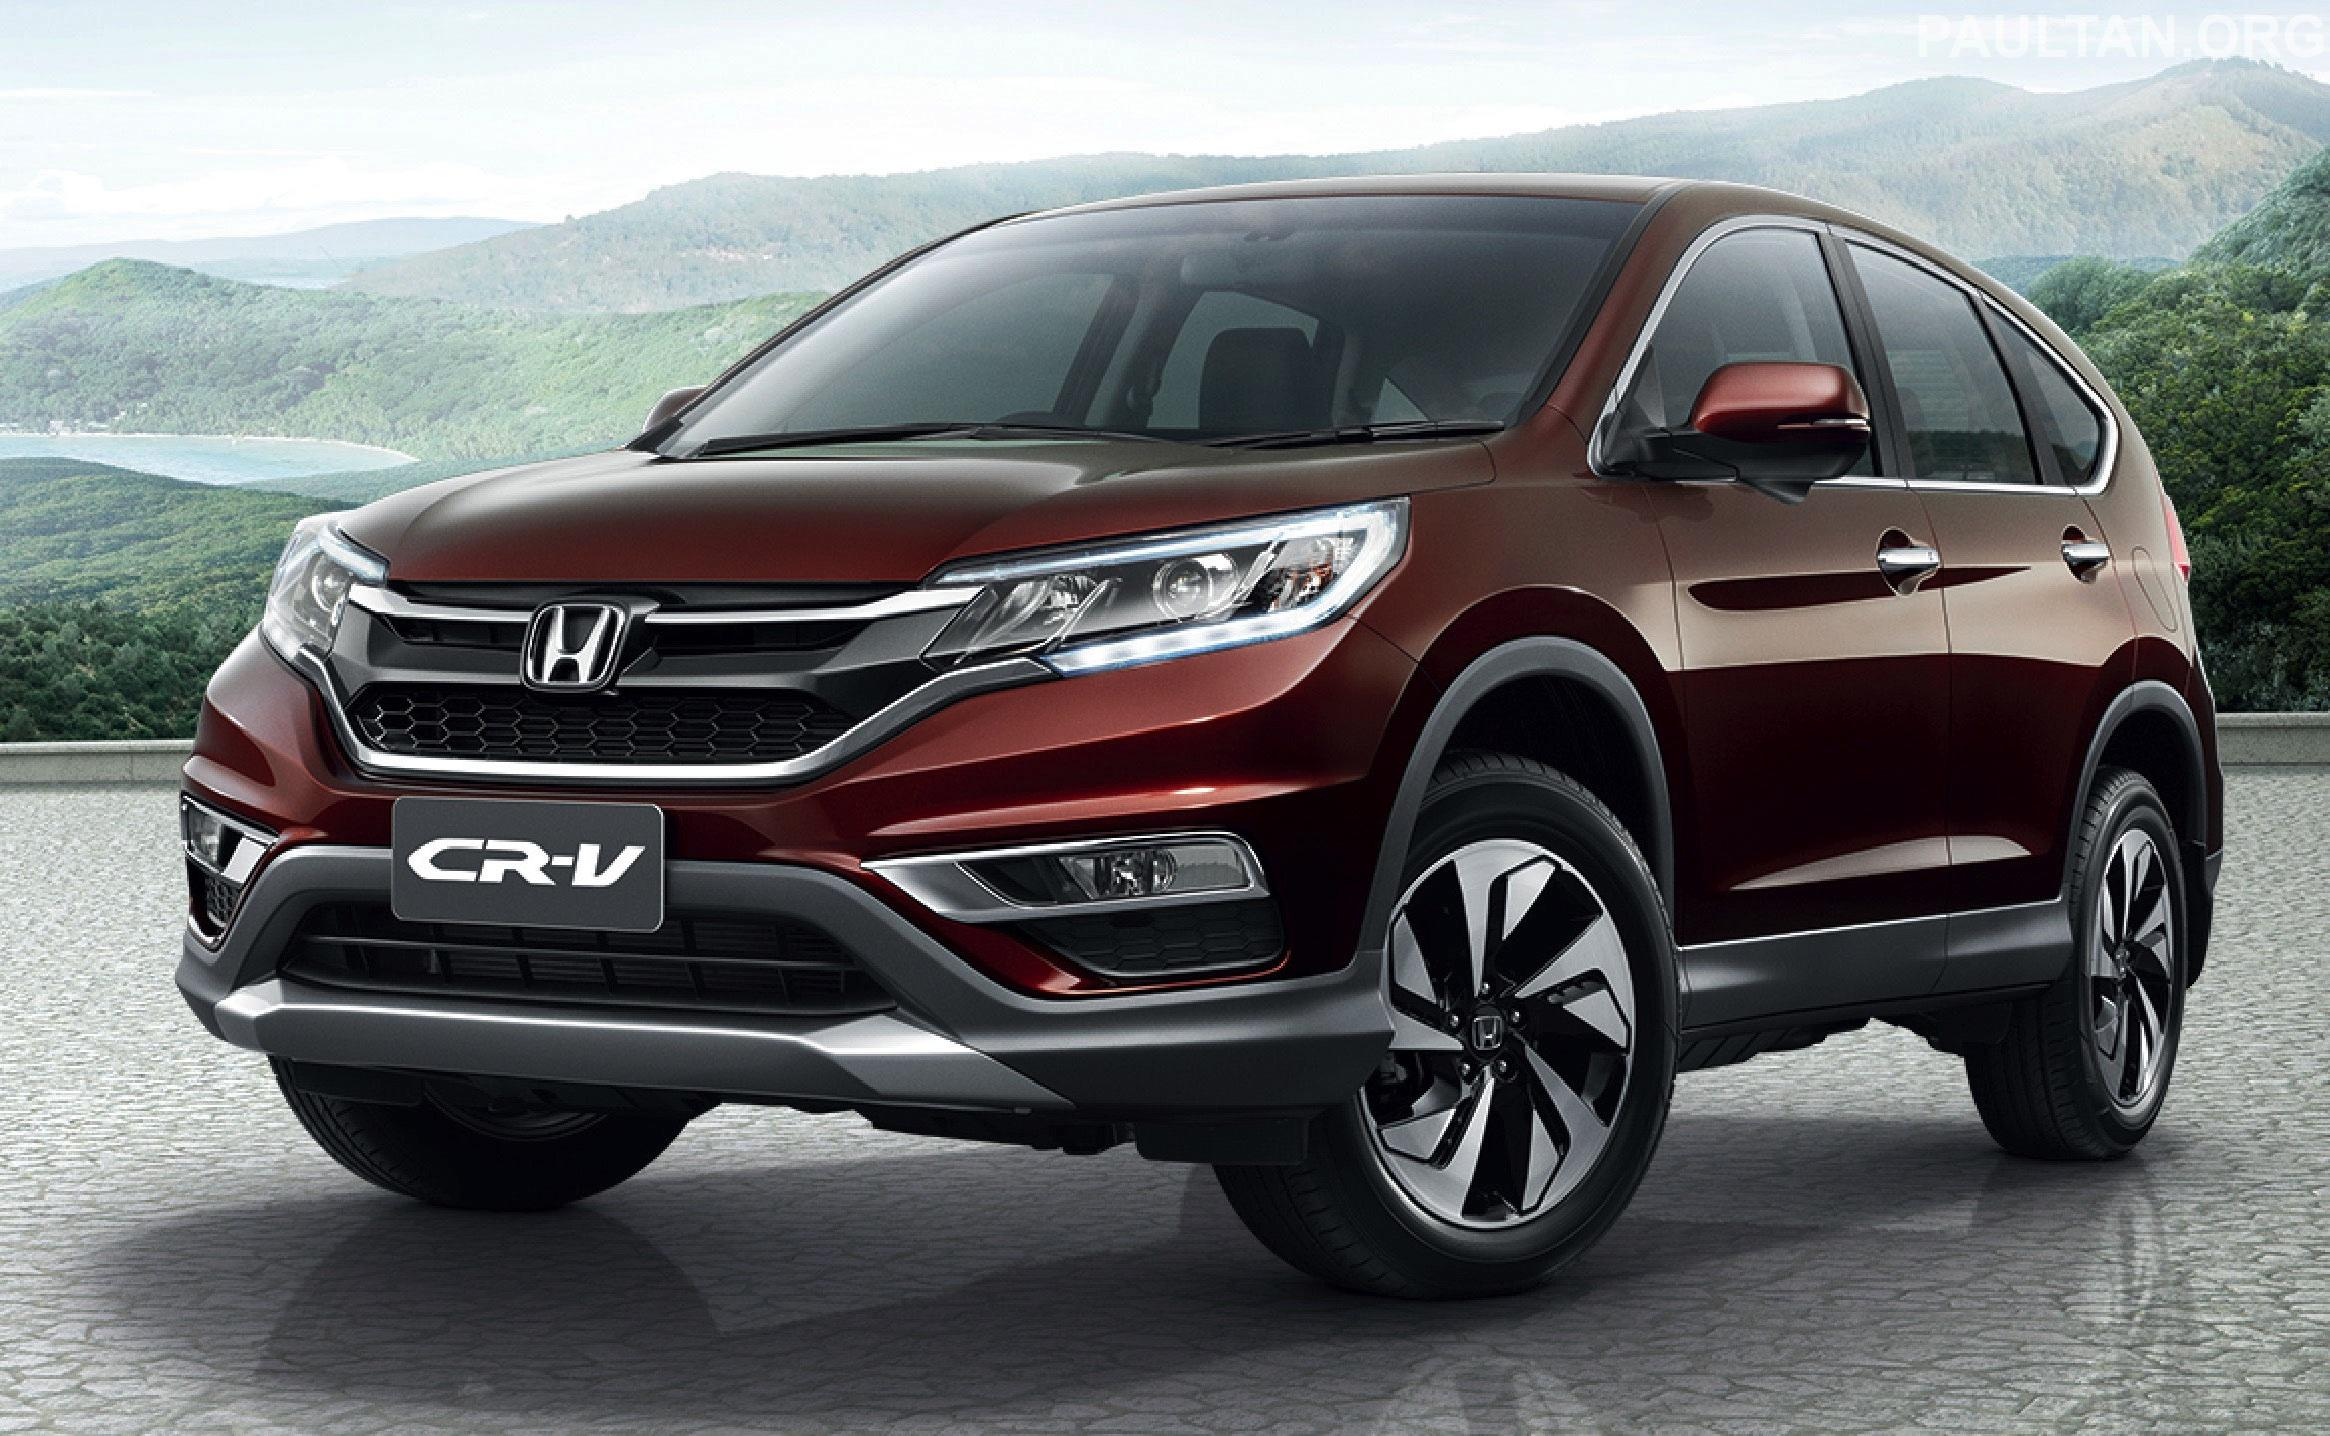 Pictures Of 2016 Honda Crv Pictures Share The Knownledge